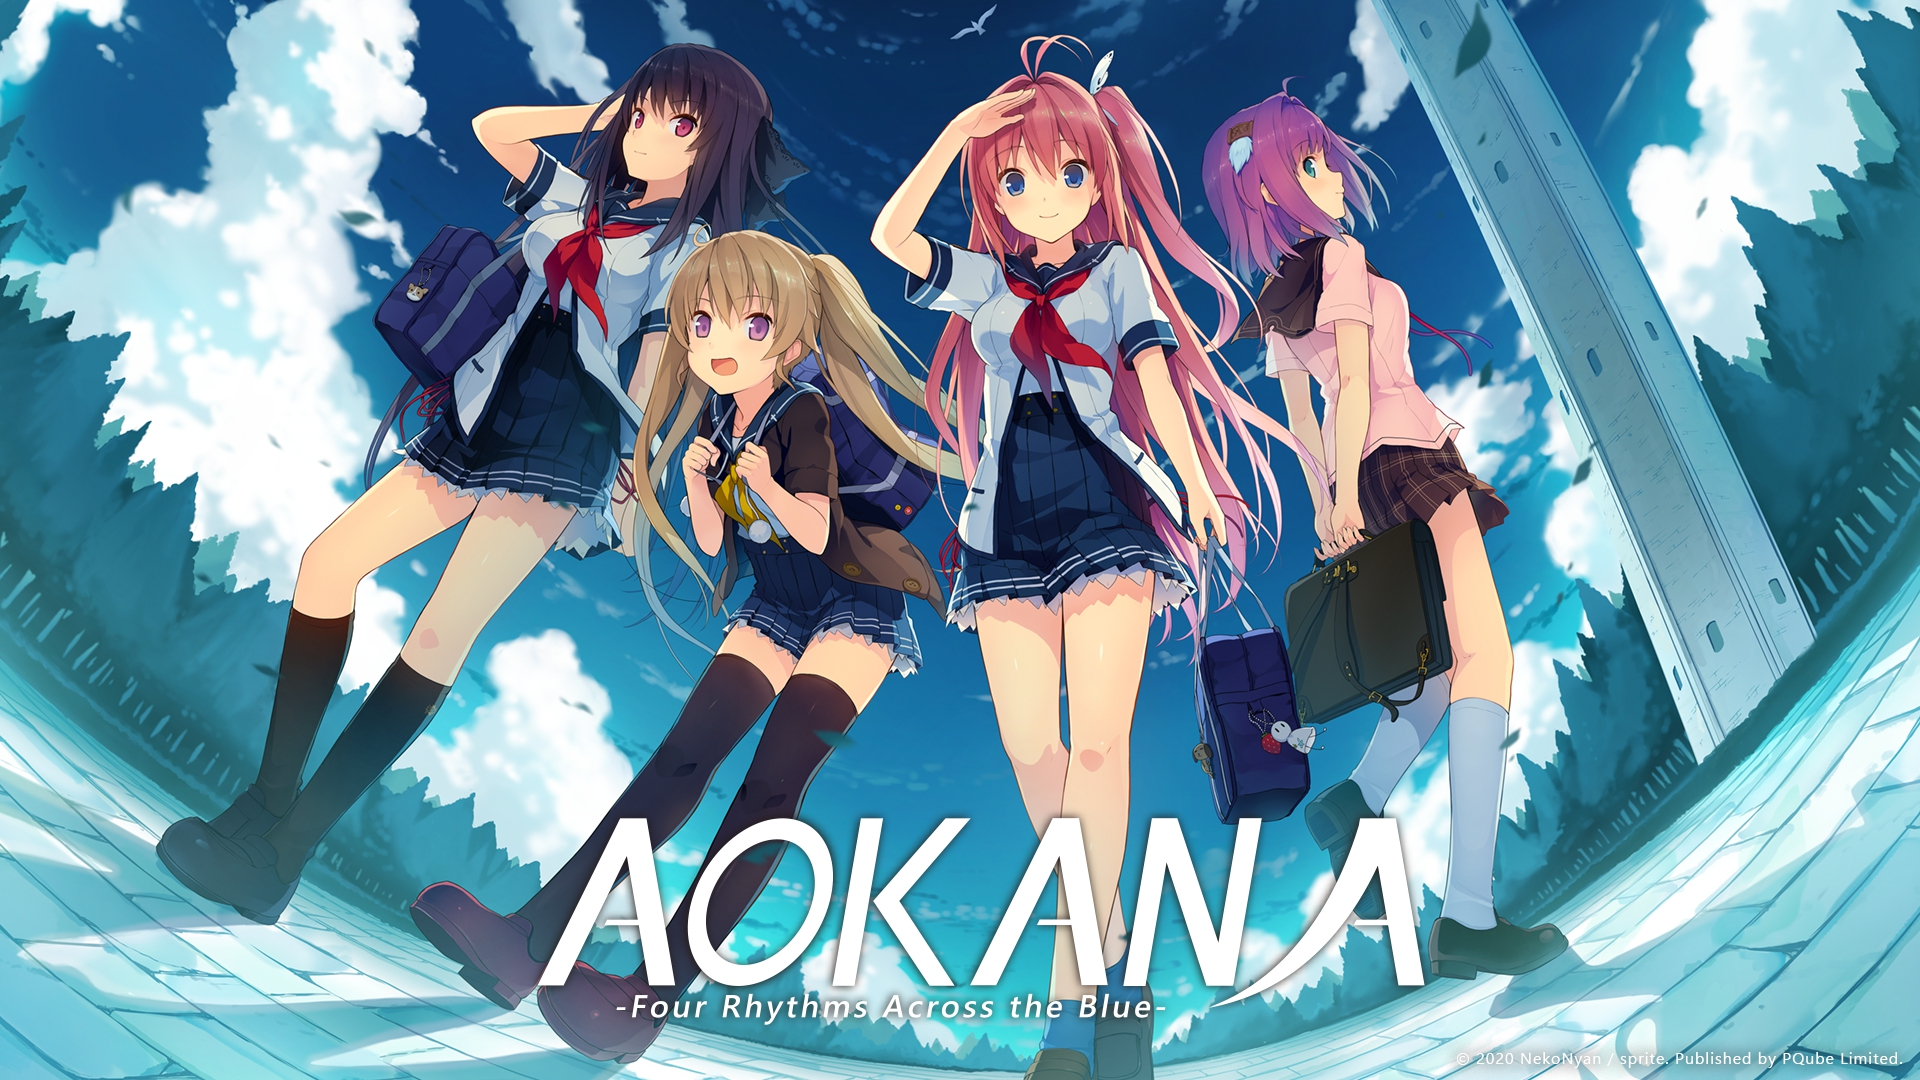 Aokana Four Rhythms Across the Blue Principal